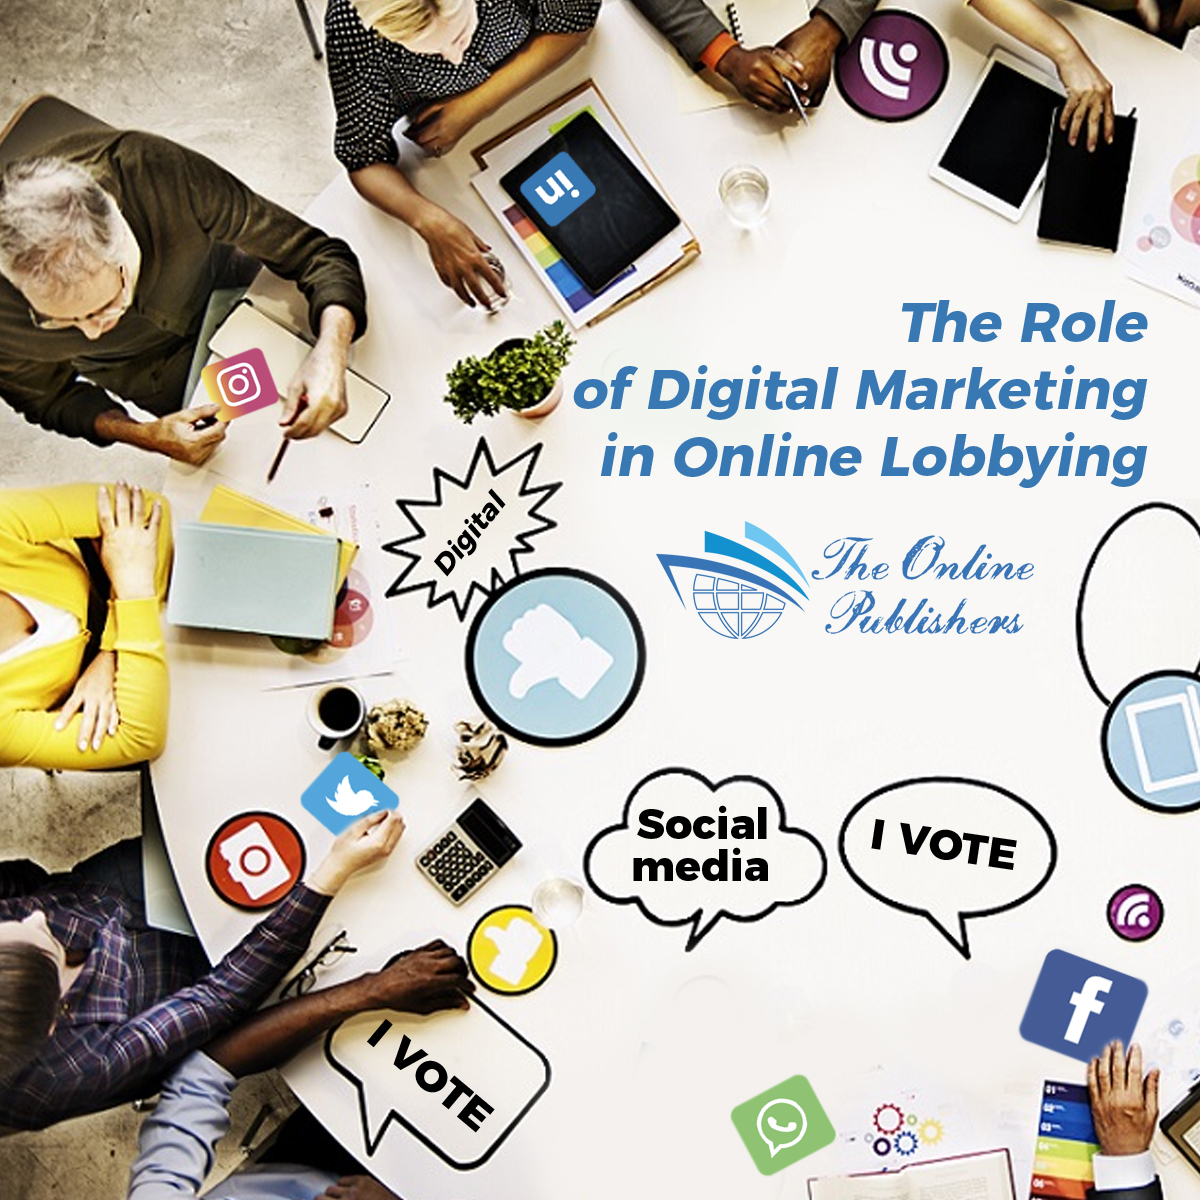 The Role of Digital Marketing in Online Lobbying